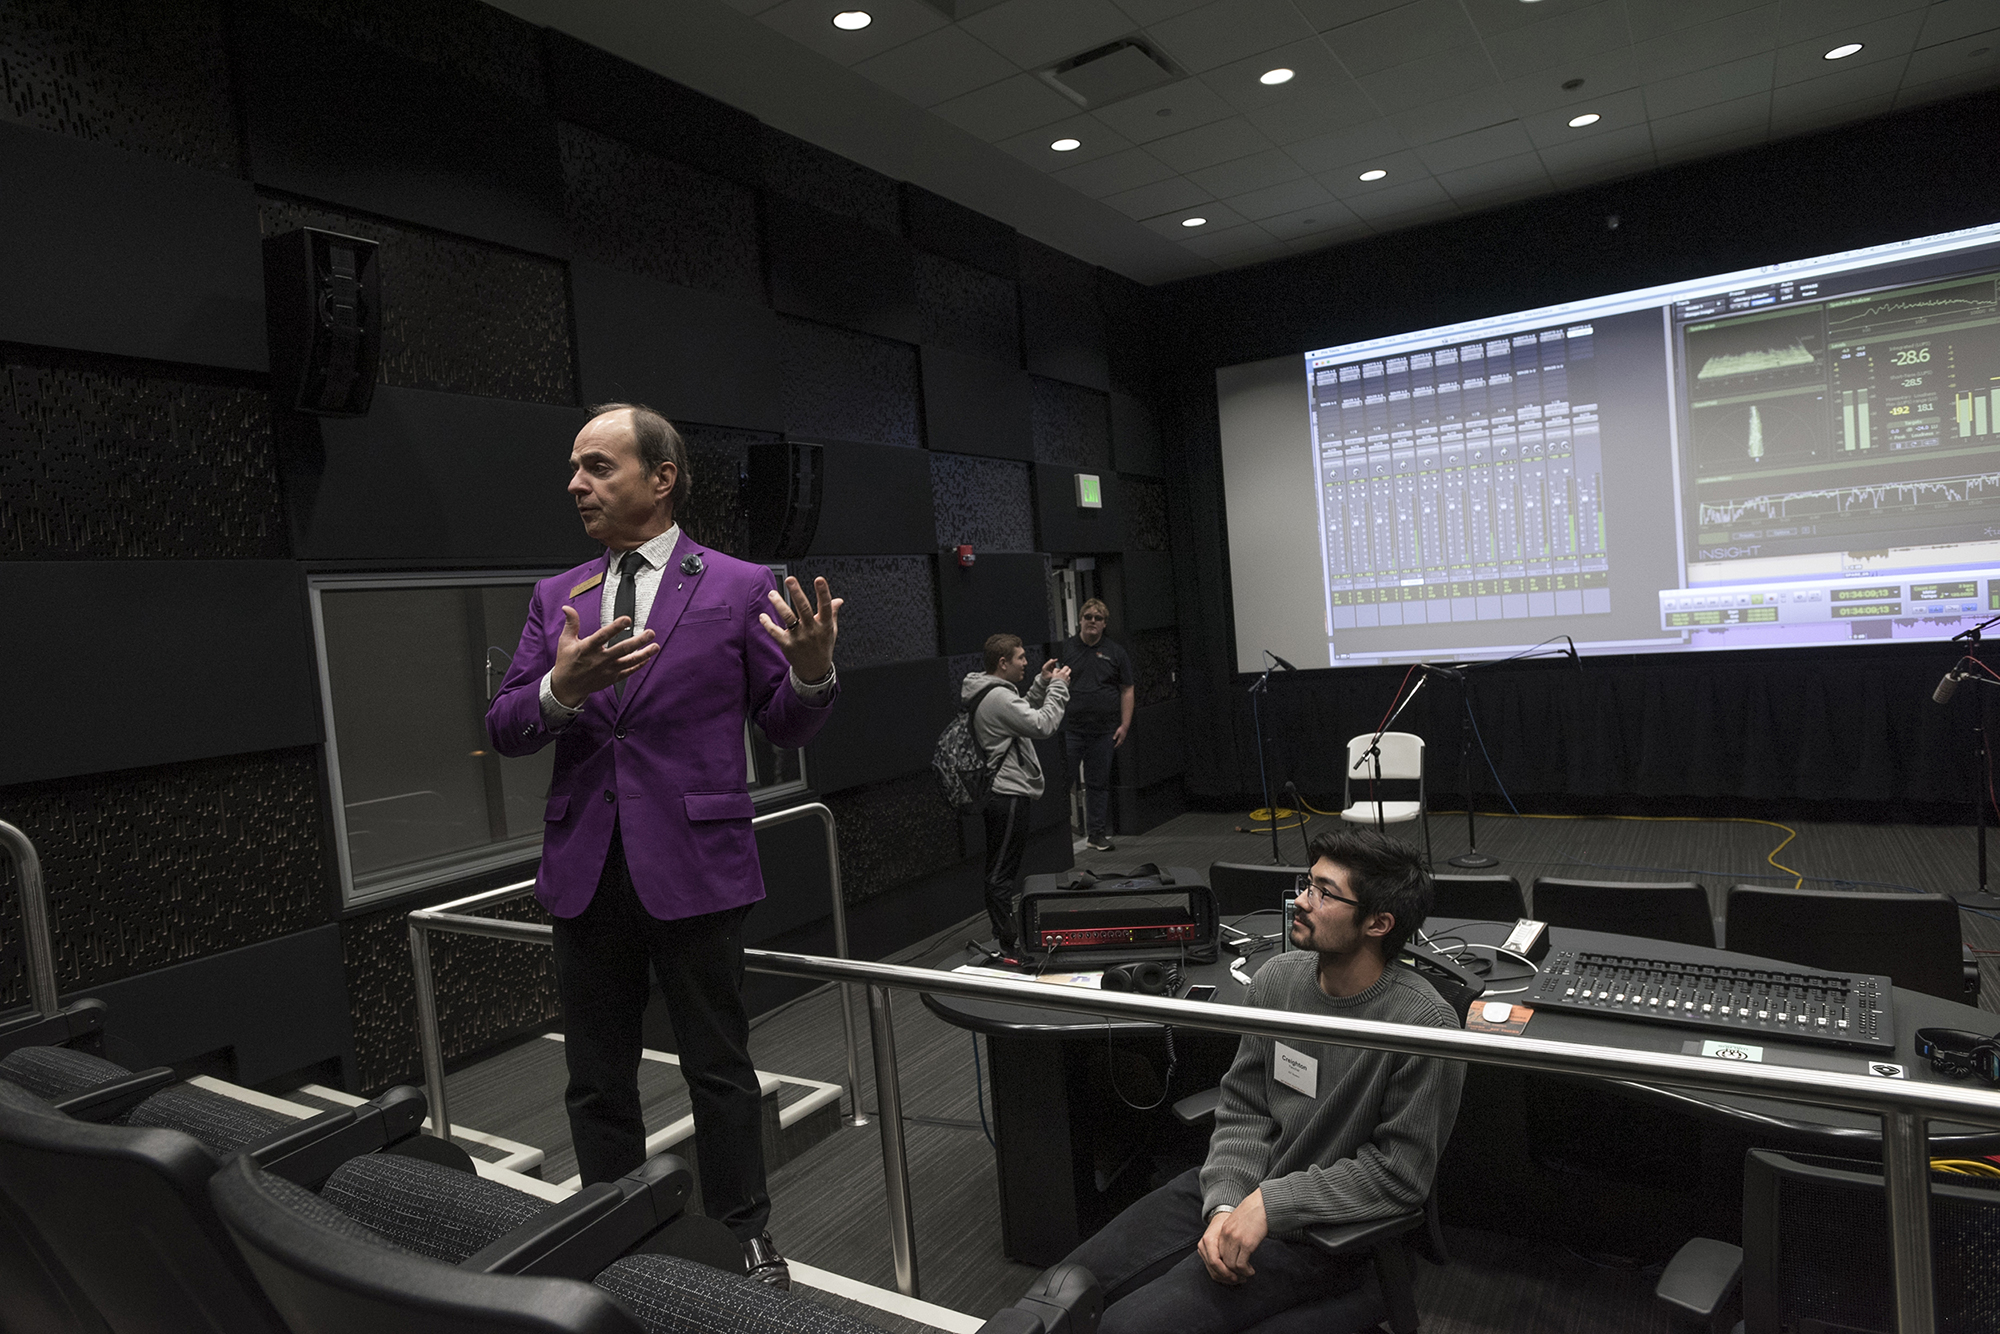 Dave Sluberski presents in MAGIC Spell Studios' sound mix theater as Creighton Yanchar sits behind the controls.